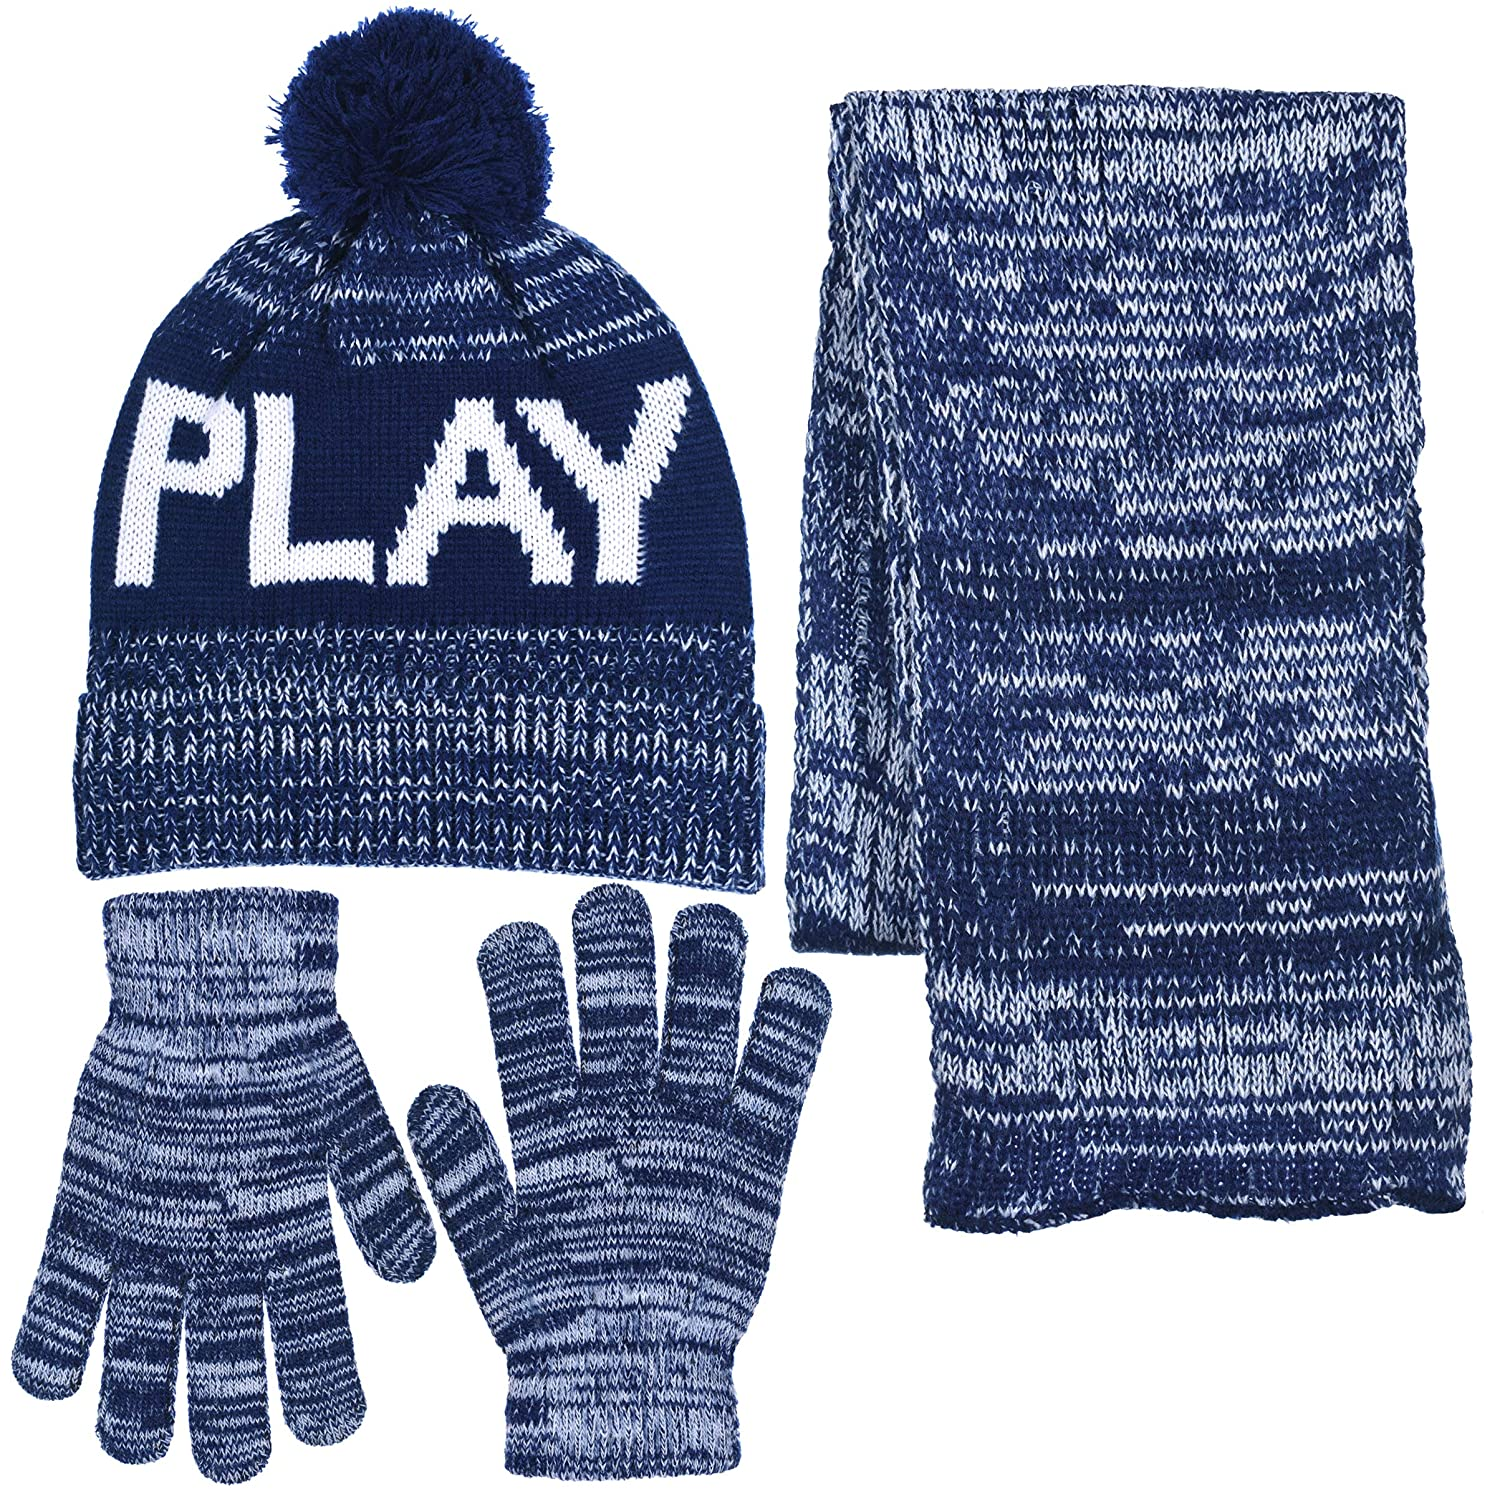 74a67bc7abaae Amazon.com  Boys Personality 3 Piece Knit Cuffed Pom Beanie Scarf   Gloves  Set 3 Colors (Dude - Black   White)  Clothing